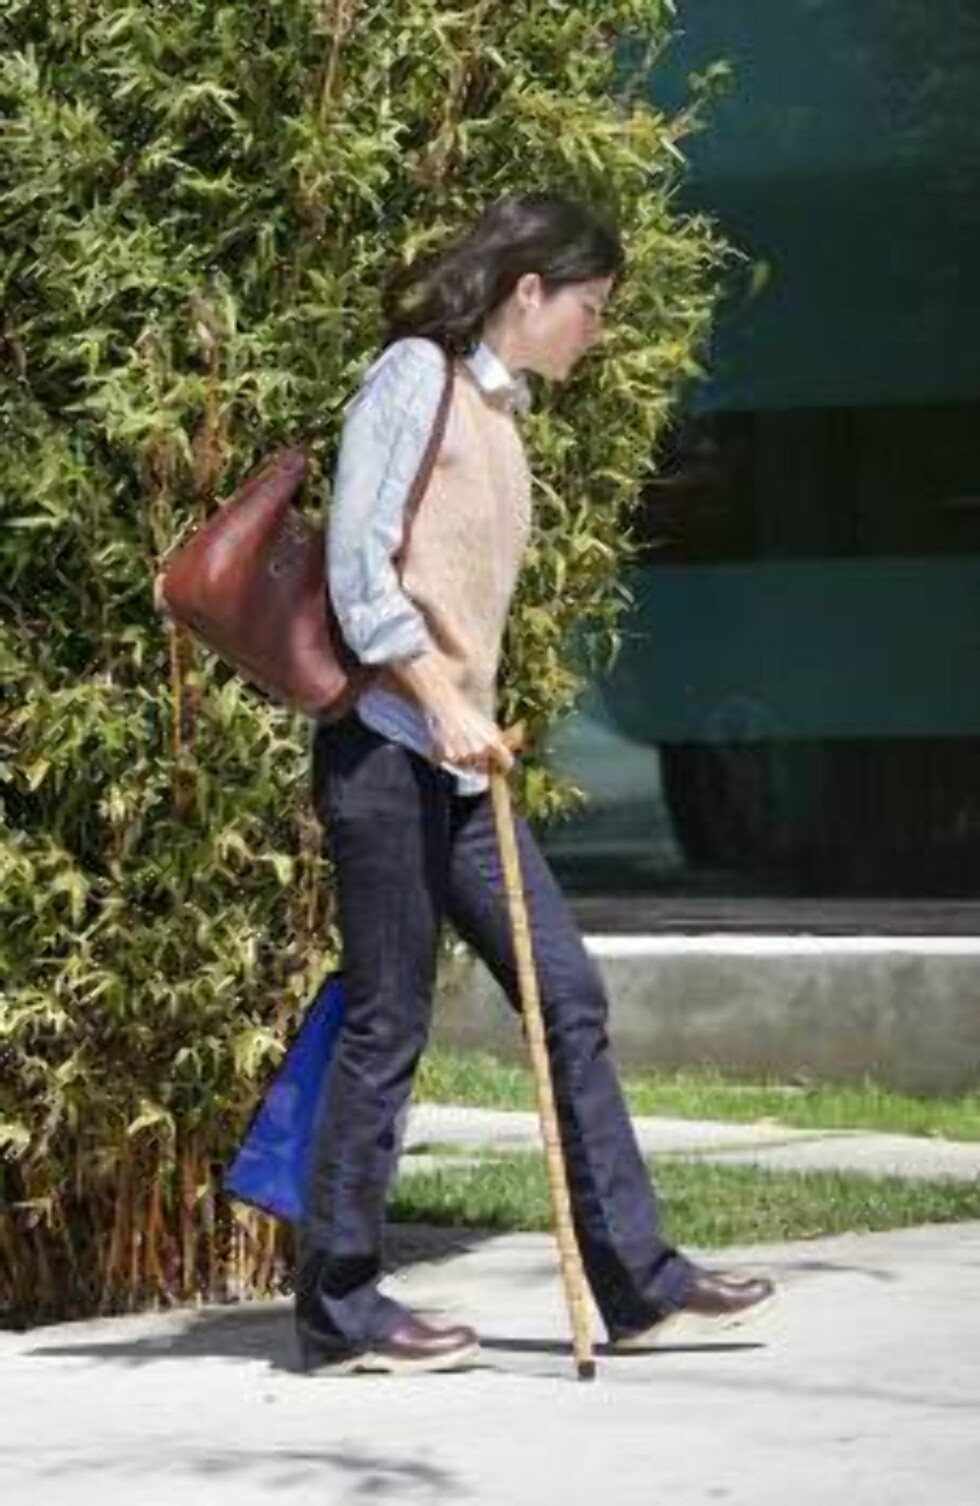 LOS ANGELES 2006-03-29.  EXCLUSIVE. US actress Selma Blair is strolling with crutches with difficulties because of her broken foot, in West Hollywood, CA, USA, on March 29, 2006.   Photo: VIPIX/ABACAPRESS Code: 4001/94707  COPYRIGHT STELLA PICTURES Foto: Stella Pictures